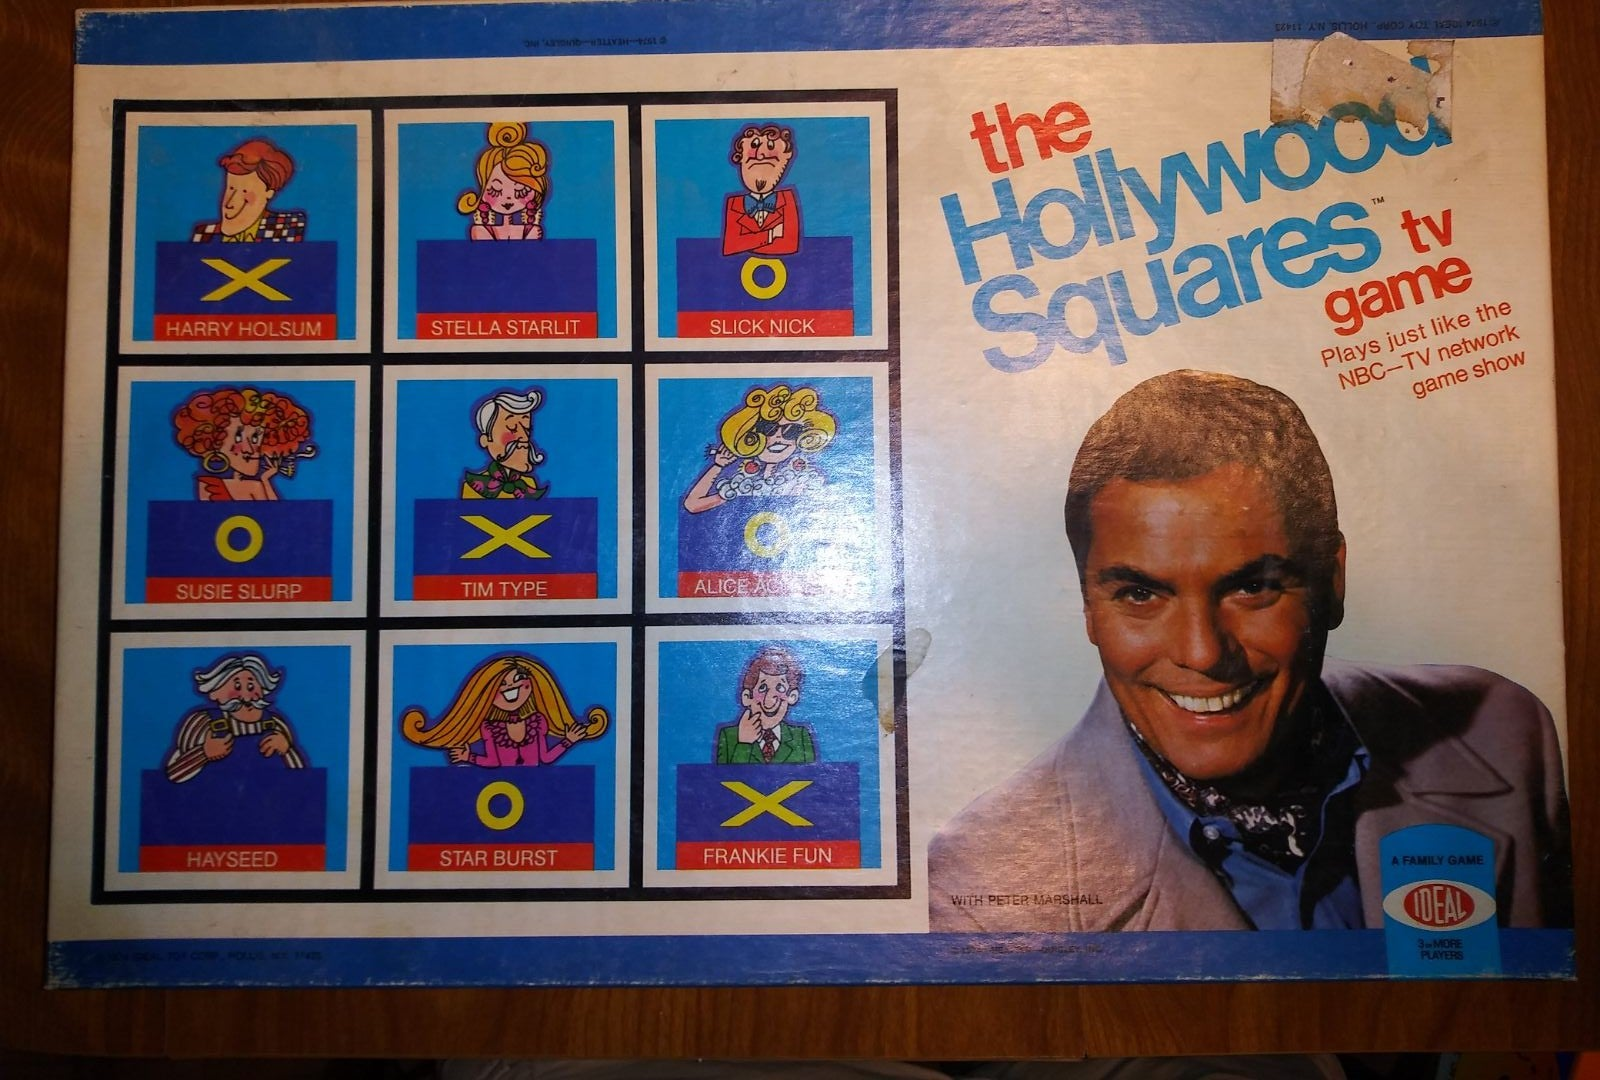 VINTAGE The Hollywood Squares TV Game Sh